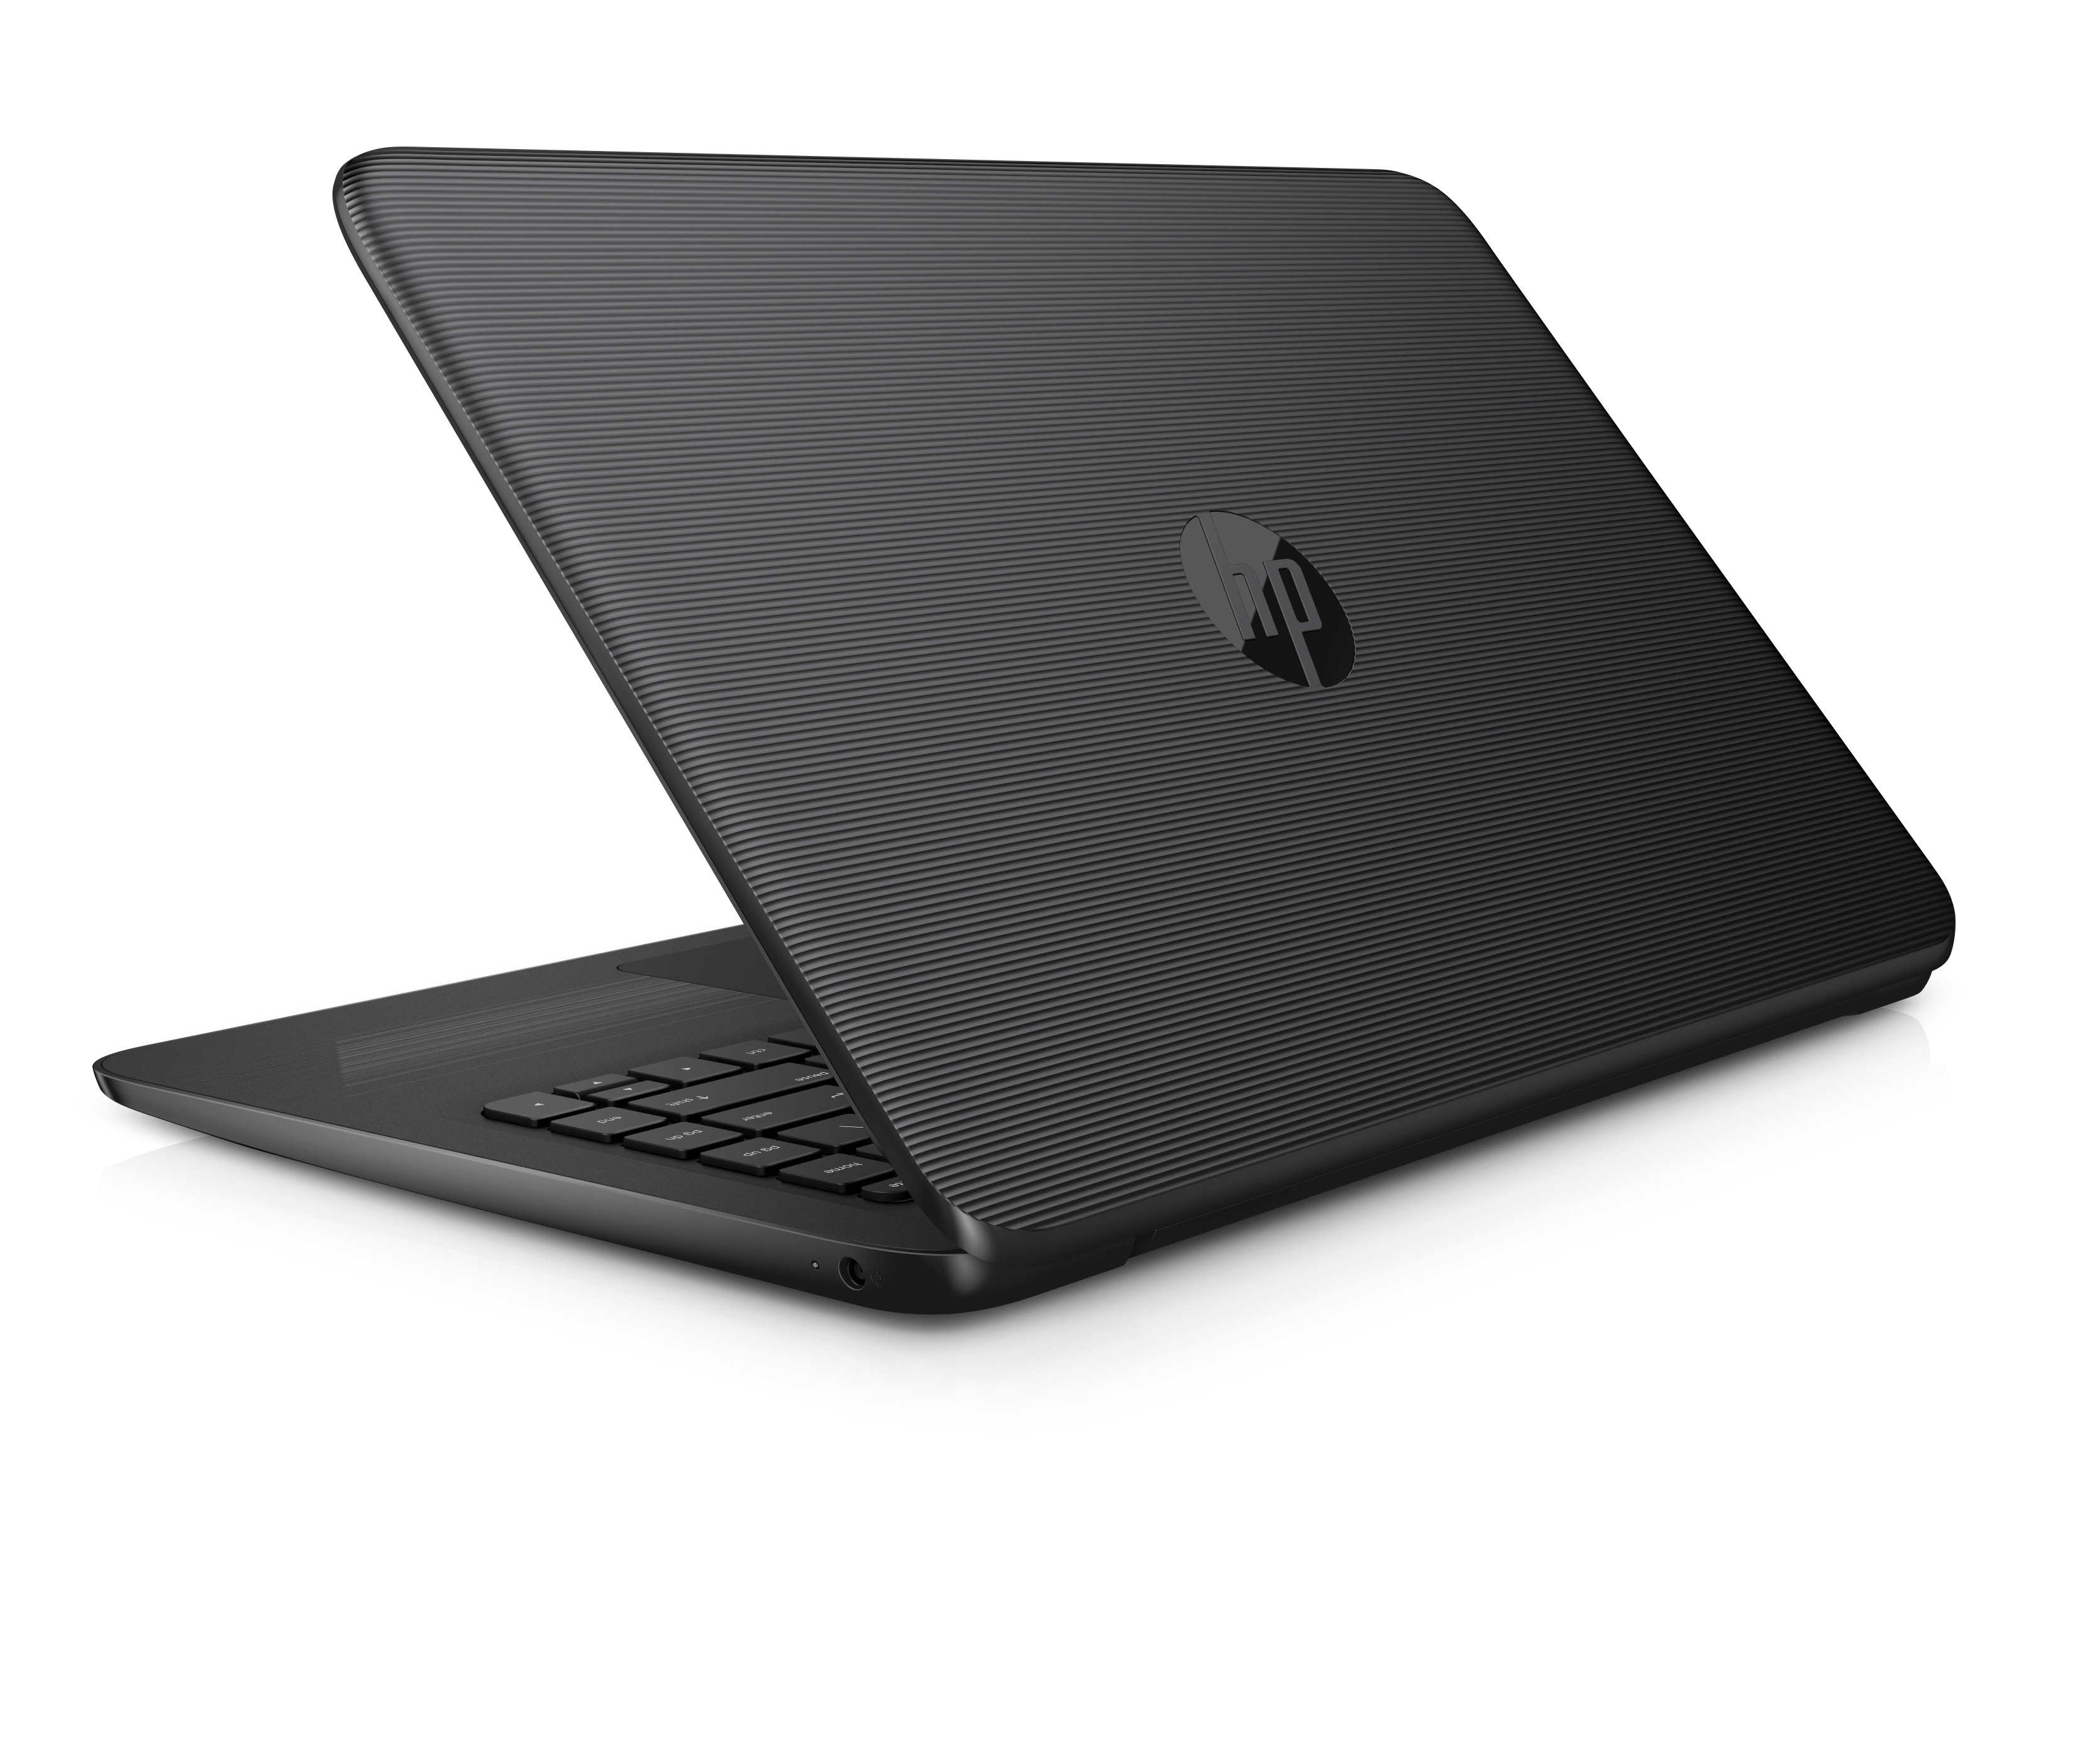 "HP Stream 14"" Jet Black Laptop, Windows 10 Home, Office 365 Personal 1-year included, Intel Celeron N3060 Processor, 4GB RAM, 32GB eMMC Storage"